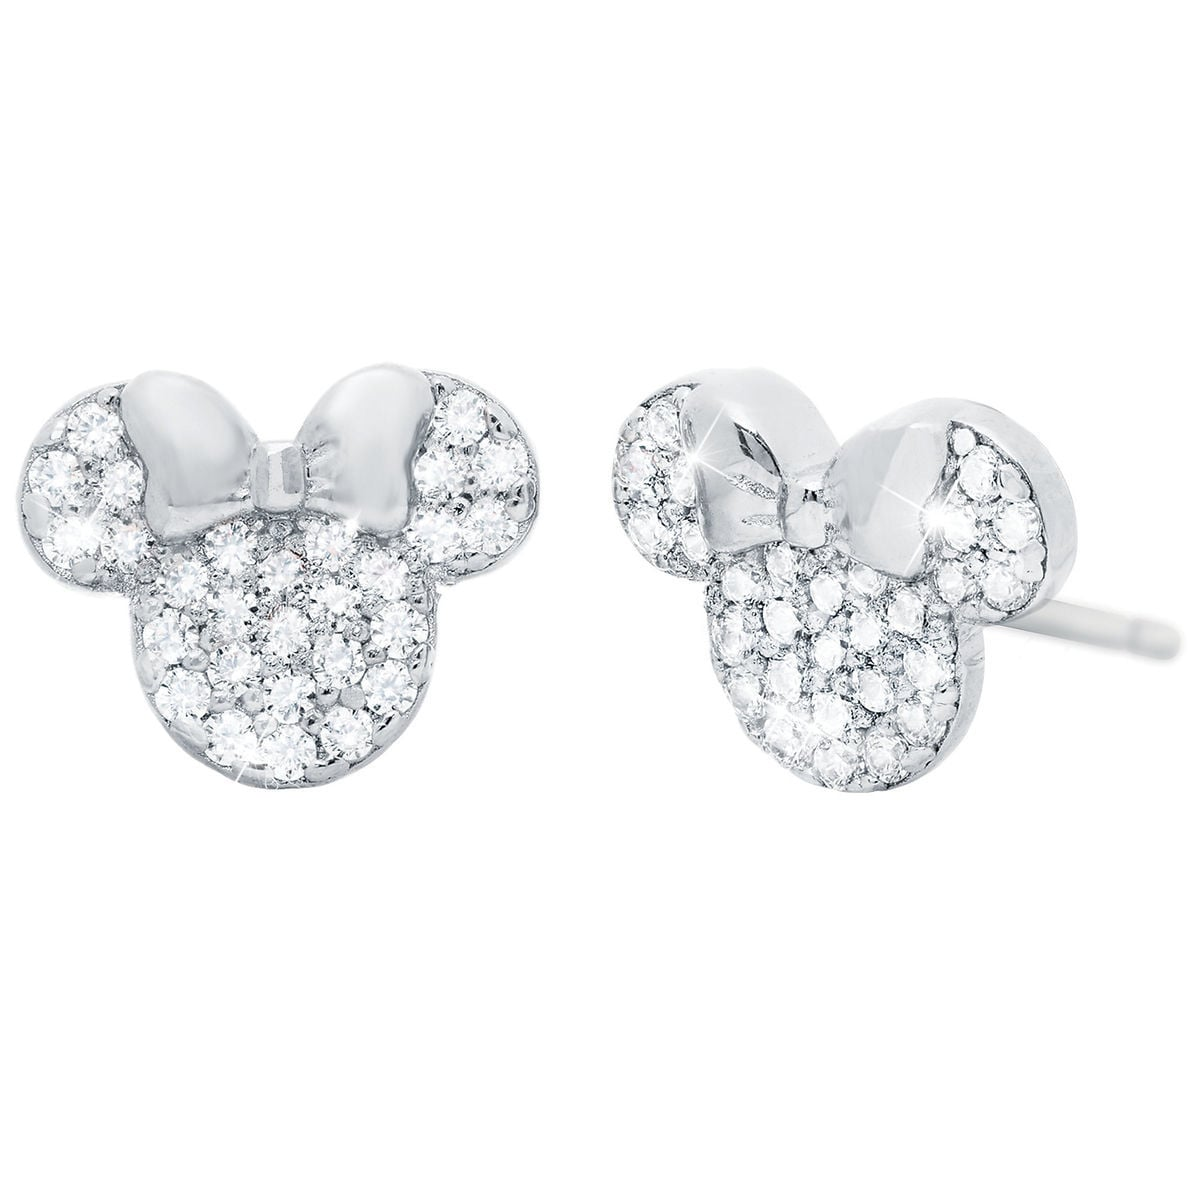 Product Image Of Minnie Mouse Icon Stud Earrings By Crislu 1